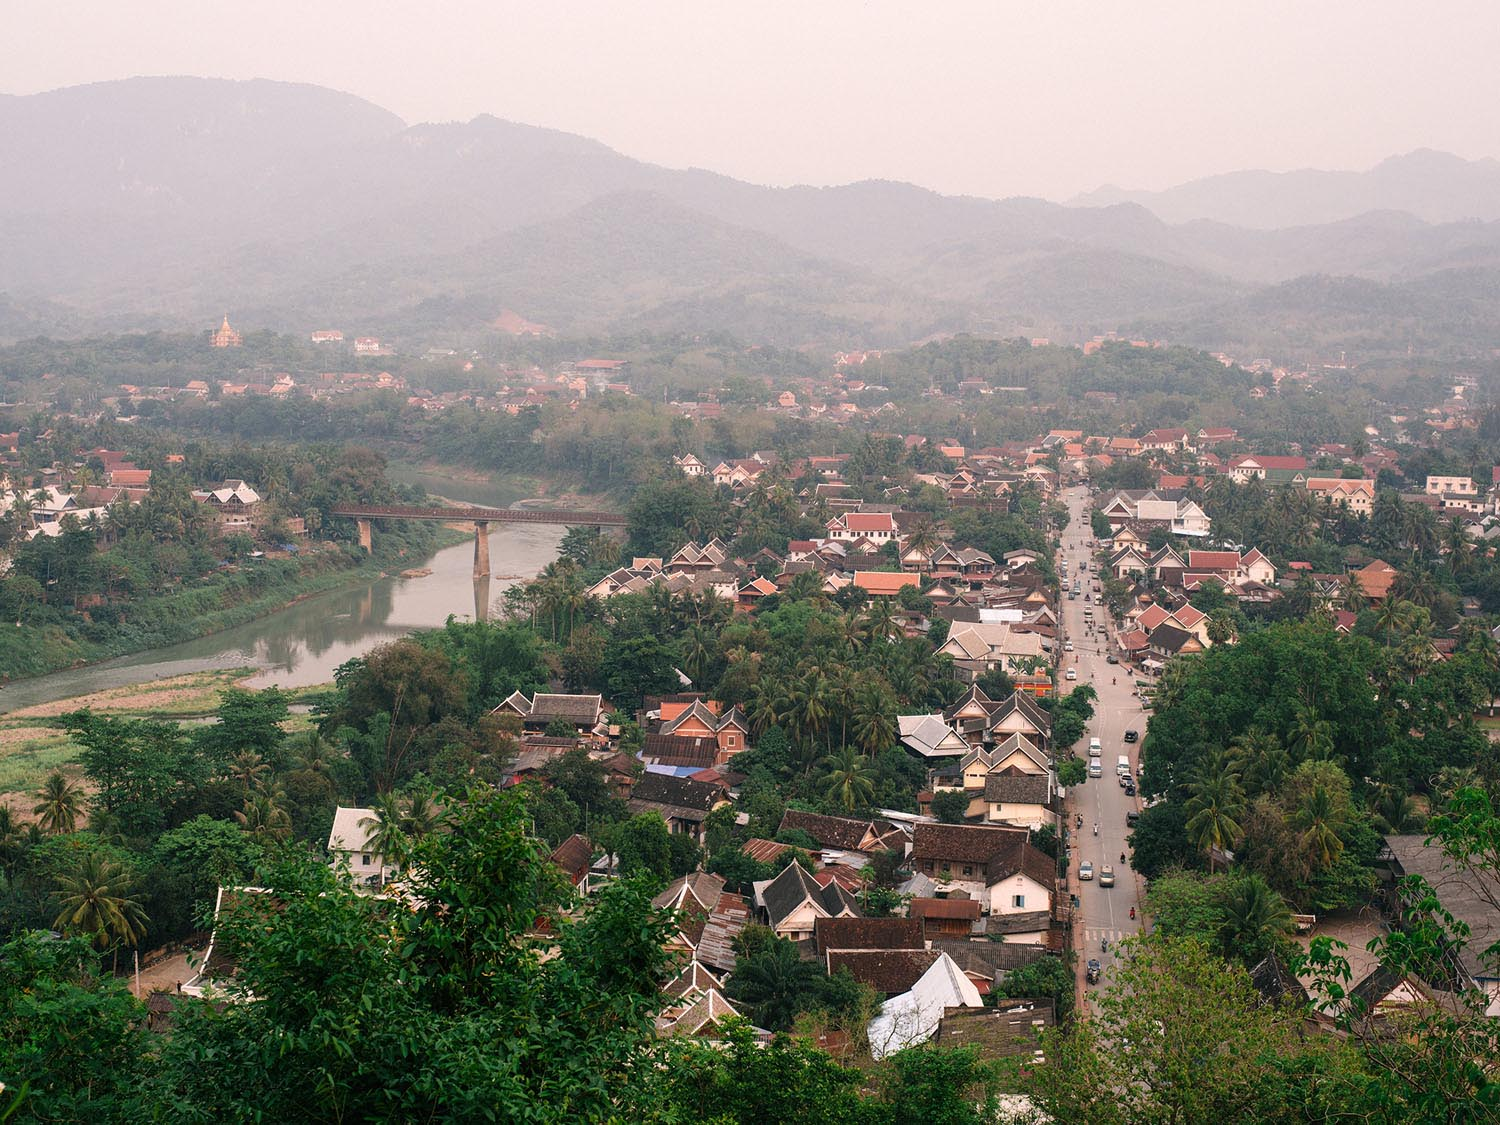 View on Luang Prabang from Mount Phou Si